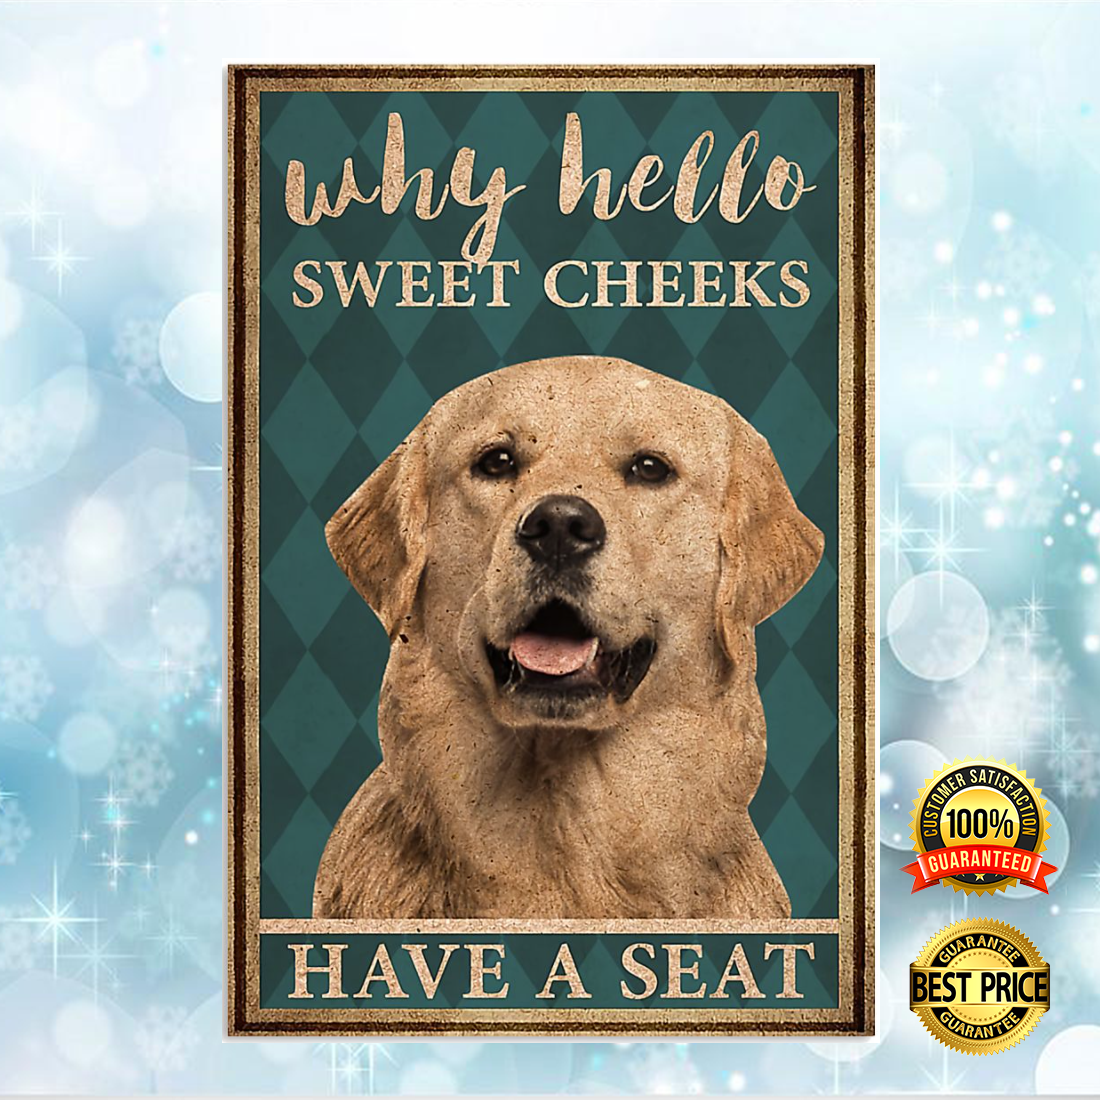 GOLDEN RETRIEVER WHY HELLO SWEET CHEEKS HAVE A SEAT POSTER 6